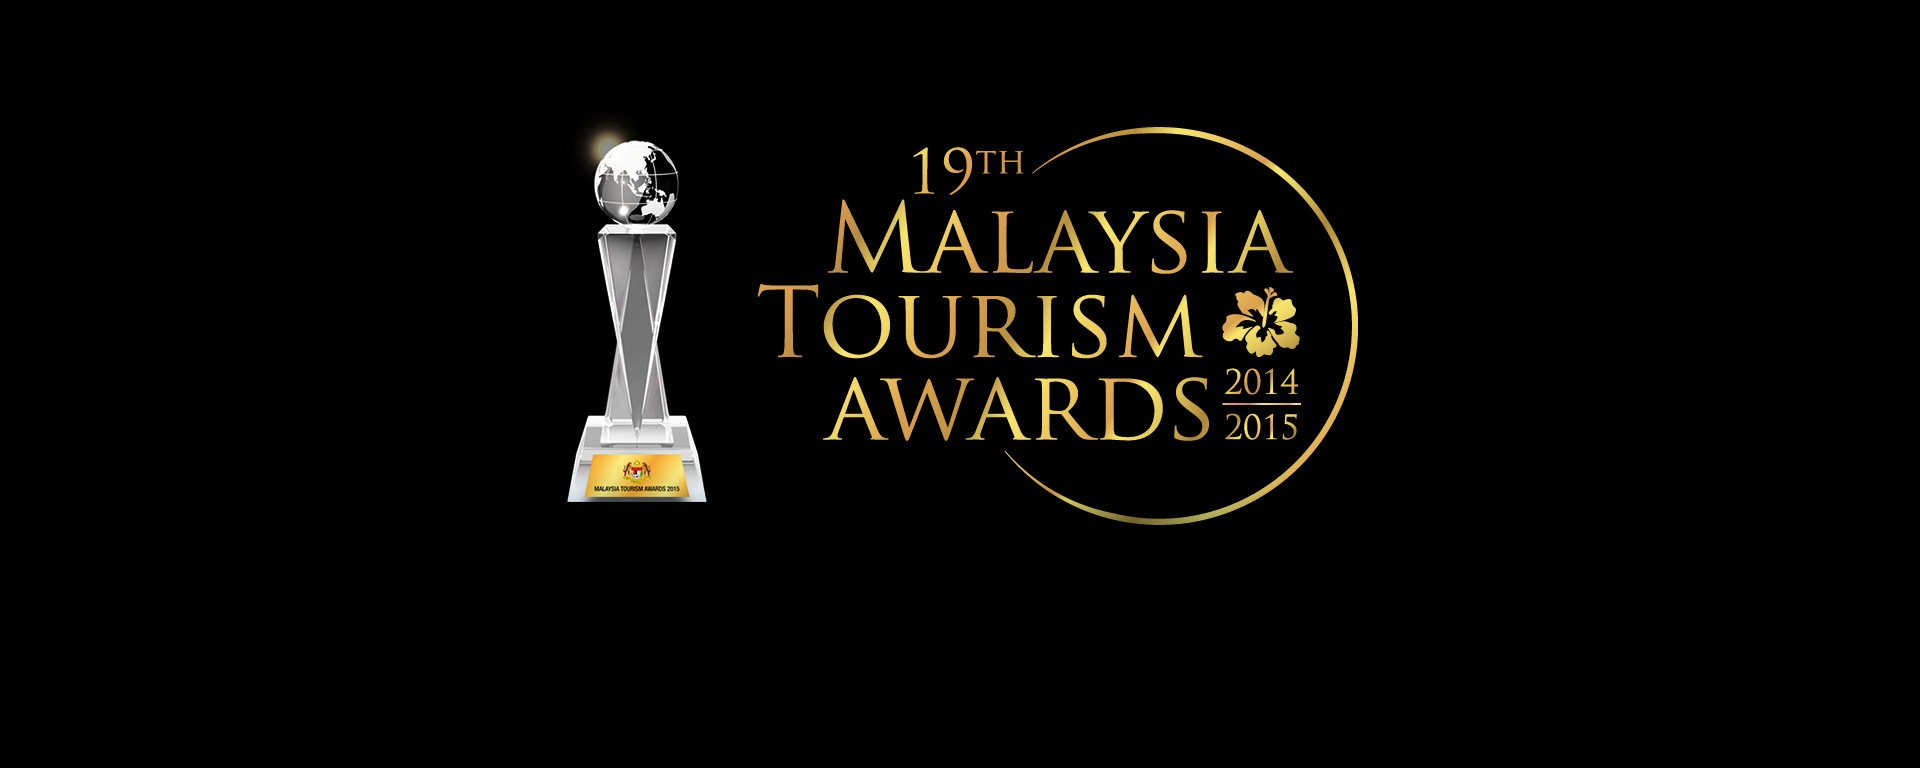 Showcasing the best of the Malaysian Tourism Industry of 2014/2015 <div class='action'><a href='http://awards.tourism.gov.my' class='btn btn-danger btn-lg'>More Info</a></div>